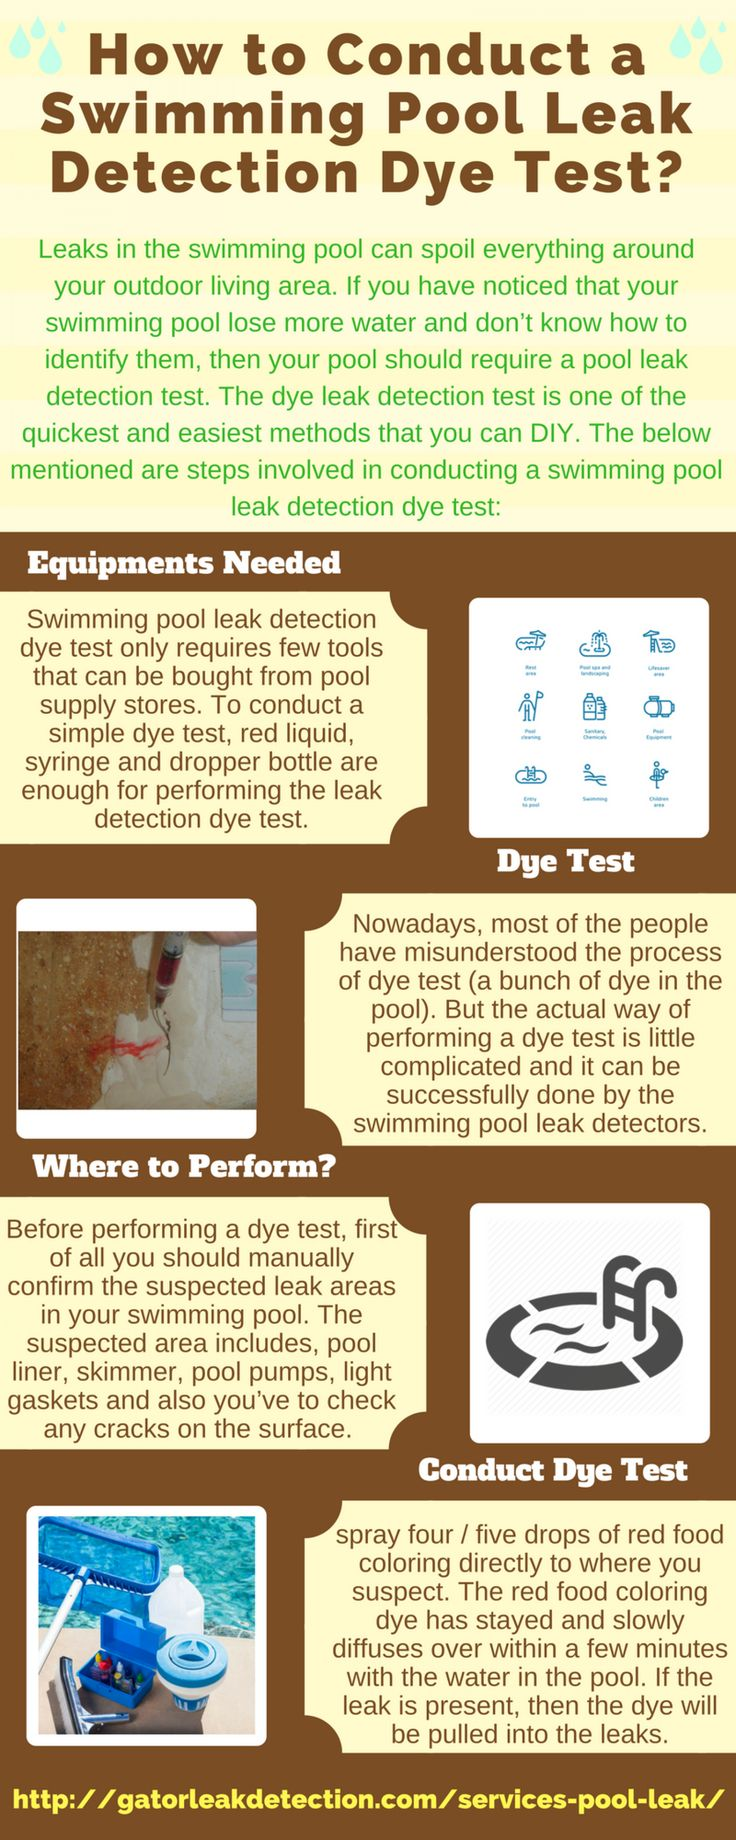 How to conduct a swimming pool leak detection dye test